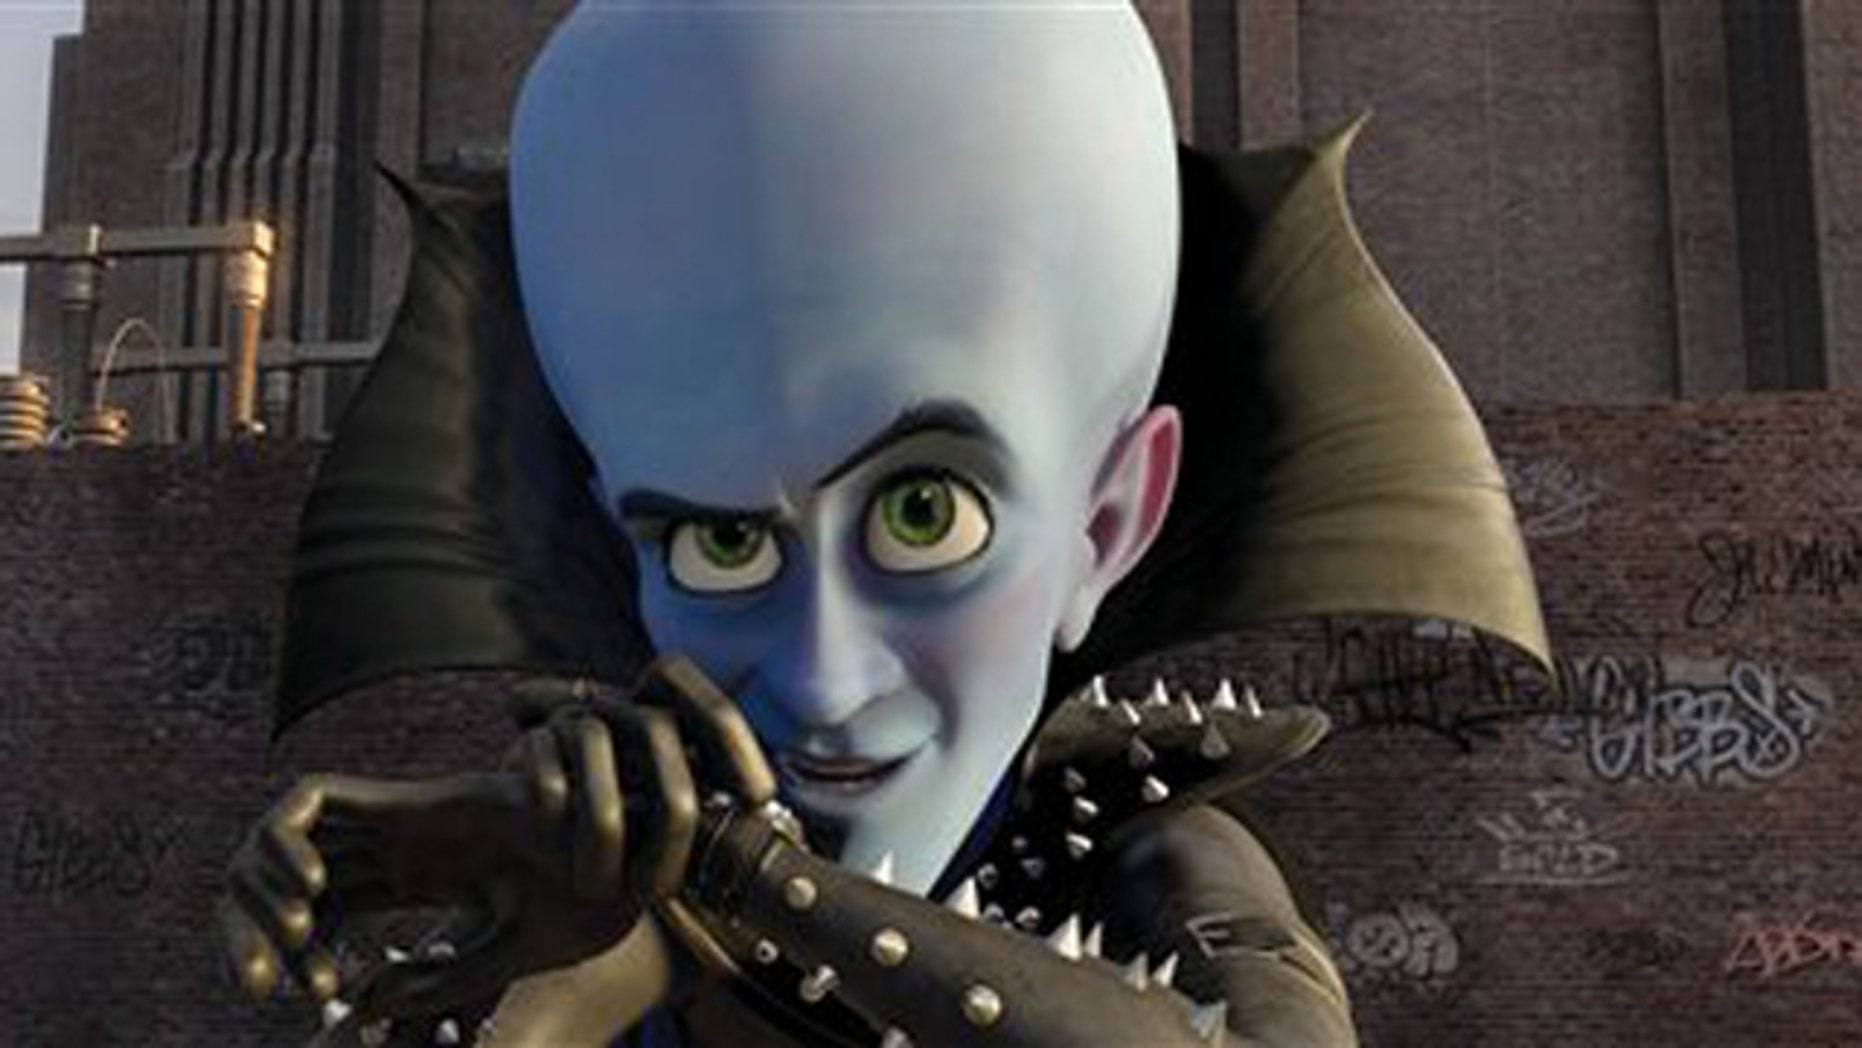 """FILE - In this film publicity file image released by Paramount and DreamWorks Animation, Megamind, voiced by Will Ferrell, is shown in a scene from the animated feature """"Megamind."""" Will Ferrell's dastardly schemes continue to succeed, with the animated """"Megamind"""" staying at the top of the box office. The DreamWorks Animation family comedy, featuring Ferrell as the voice of a super villain, made just over $30 million in its second week in theaters, according to Sunday studio estimates. It's now made nearly $90 million total. (AP Photo/DreamWorks Animation, Paramount Pictures, File)"""